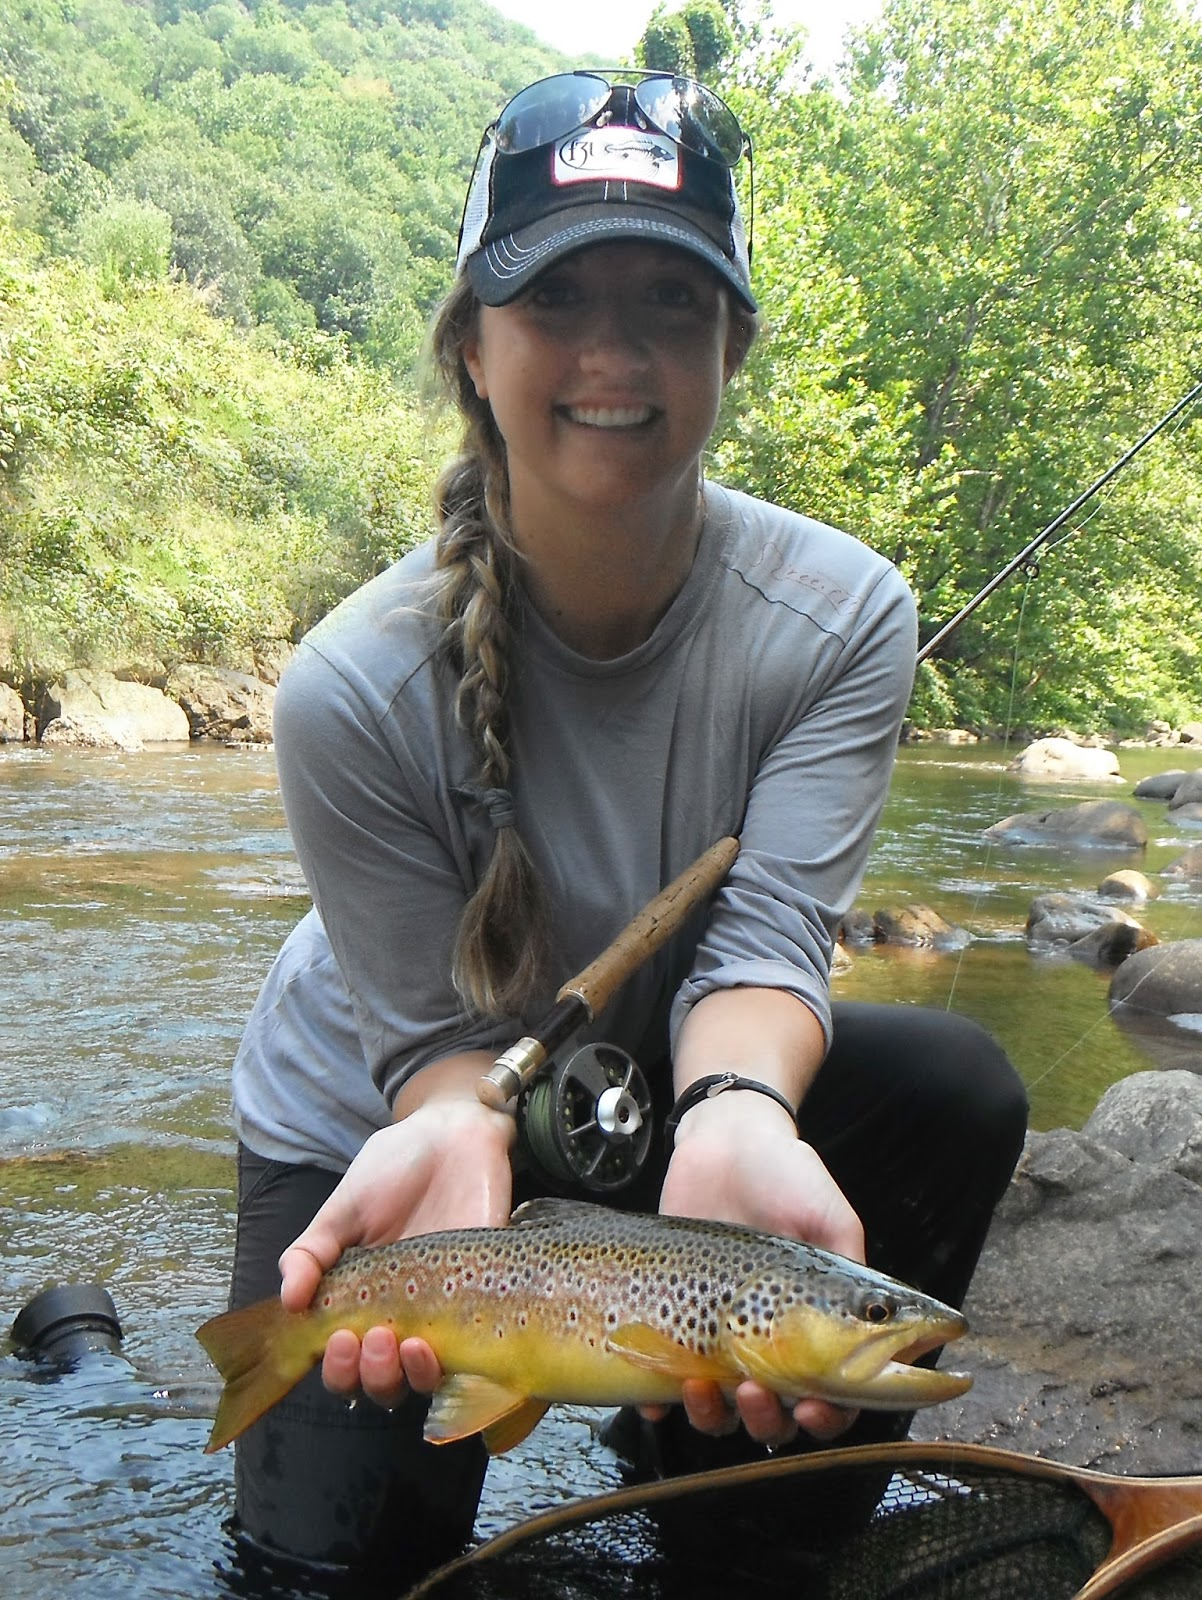 Western maryland fly fishing sunday funday for Md trout fishing